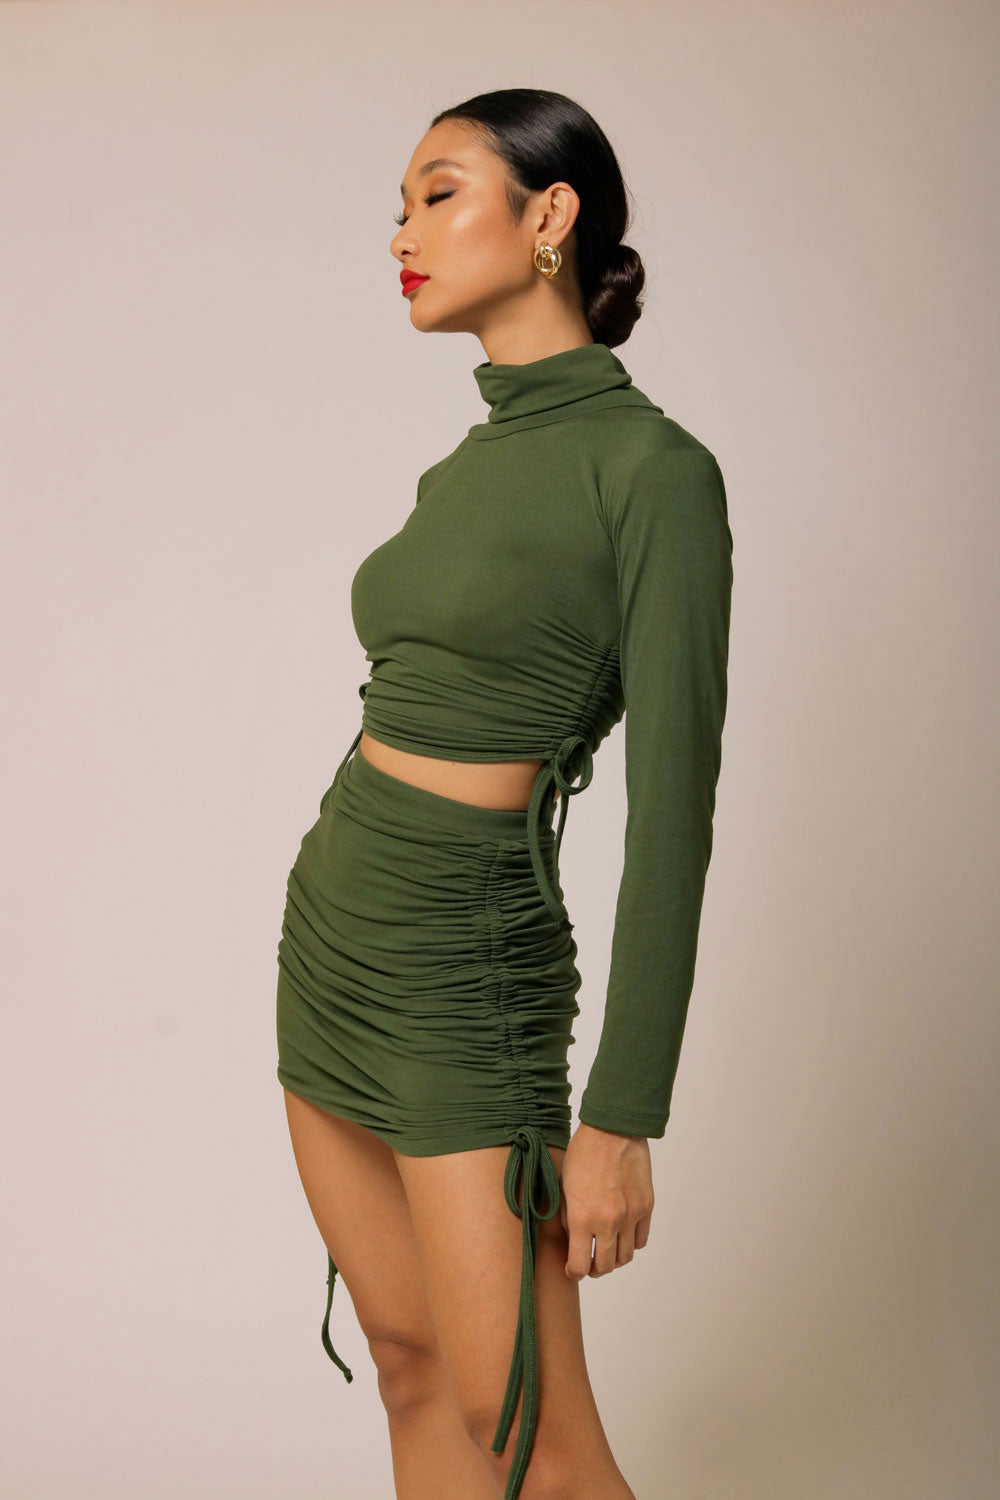 Thelma in Pine Green